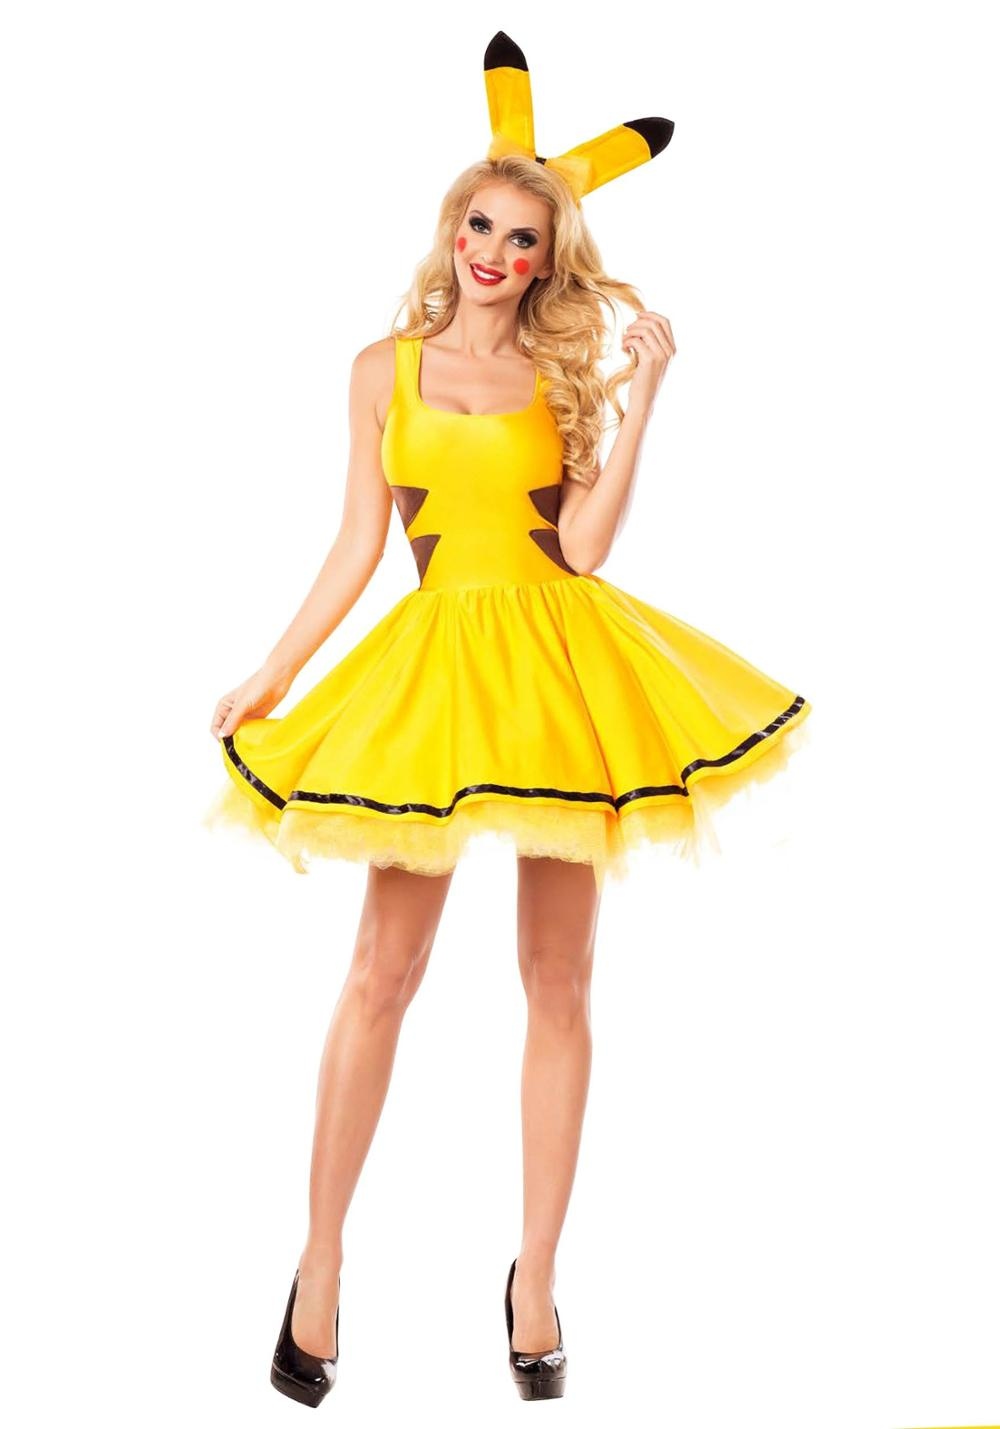 Japanese Anime Pocket Monster Pikachu Costume Sexy Yellow Cute Pikachu Mini Dress Hen Party Cosplay Fancy Dress